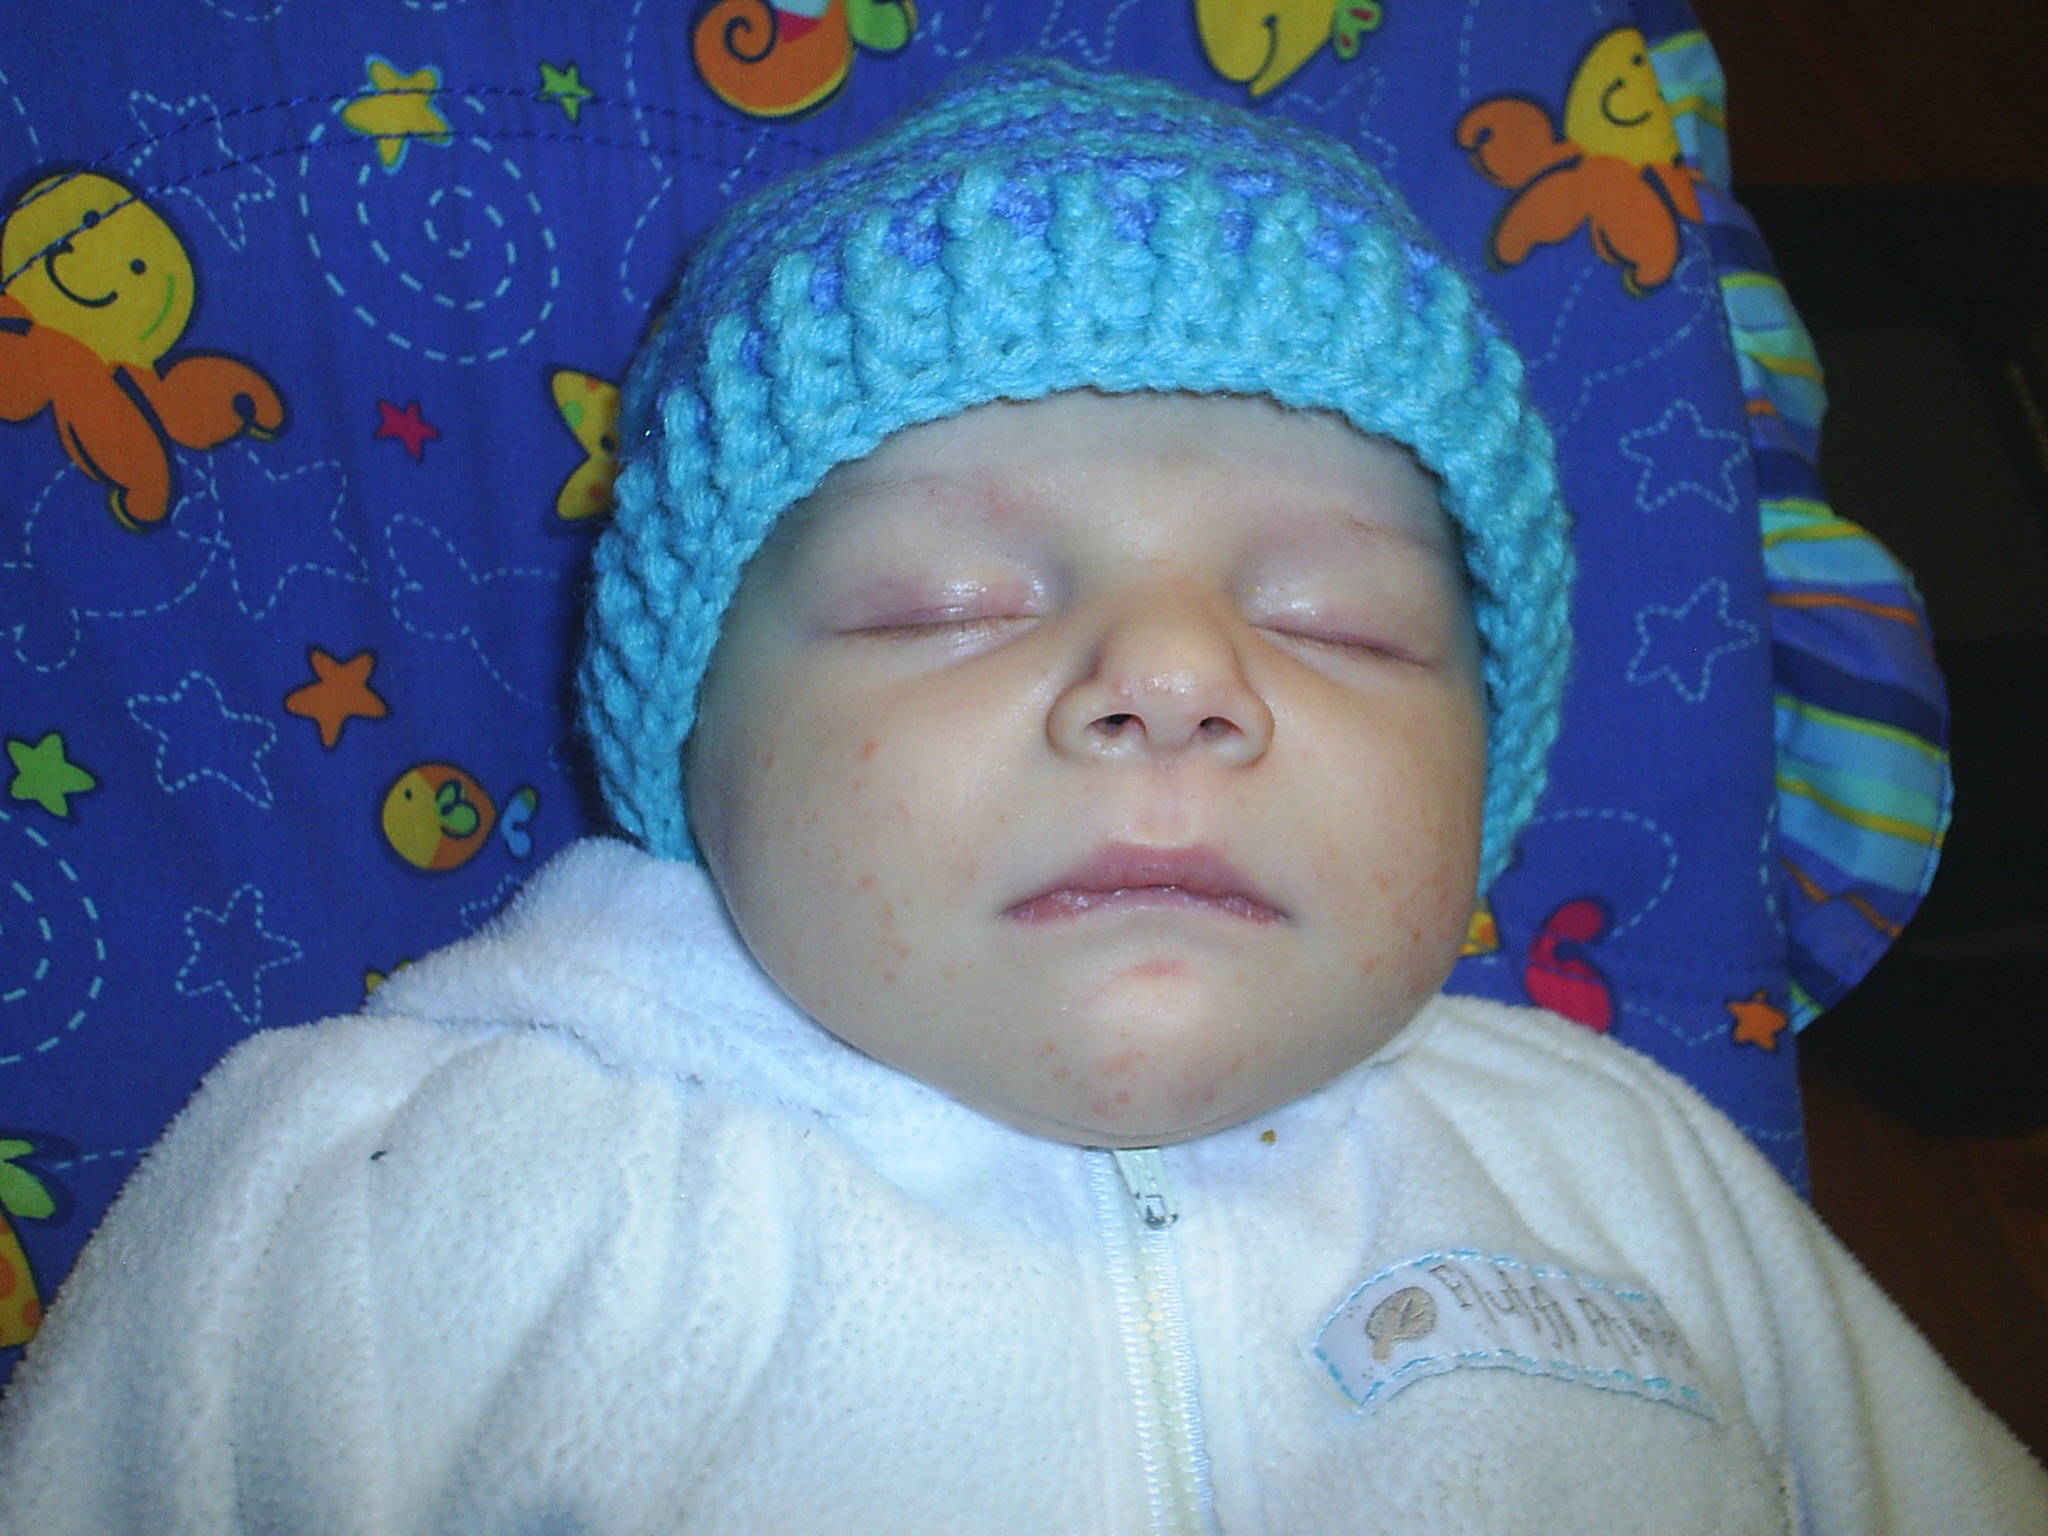 Crochet Patterns Of Baby Hats : Toddler Crochet Hat Pattern - Modern Homemakers